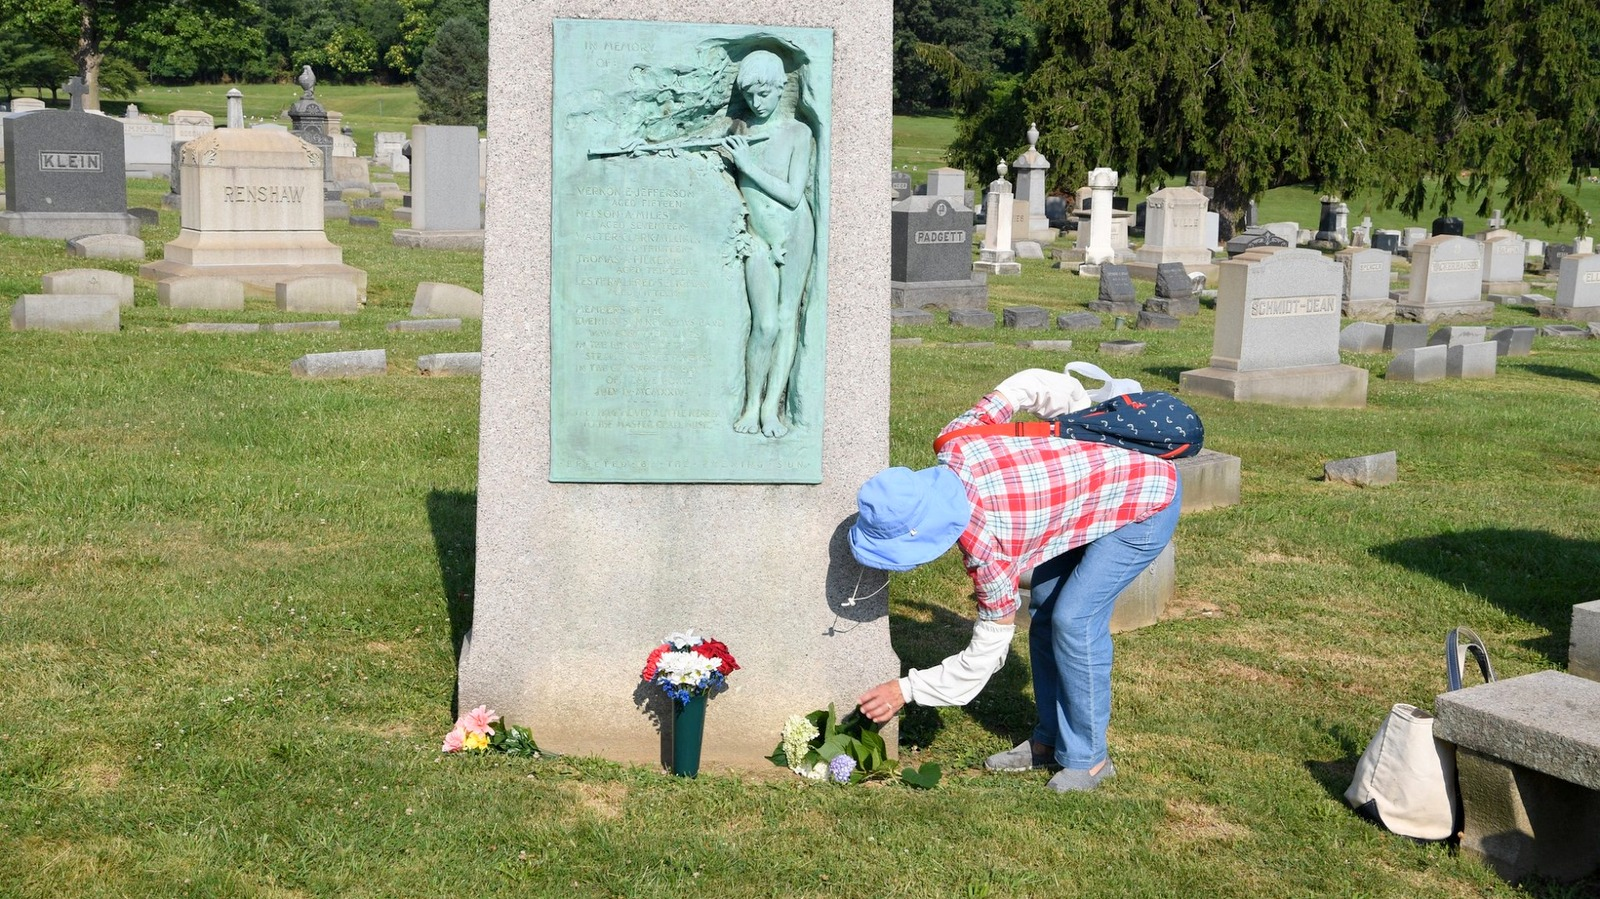 At Baltimore's Loudon Park Cemetery, paying respects at the monument to the five members of The Evening Sun Newsboys' Band who died in a July 4 boat fire in 1924. (Jim Burger)